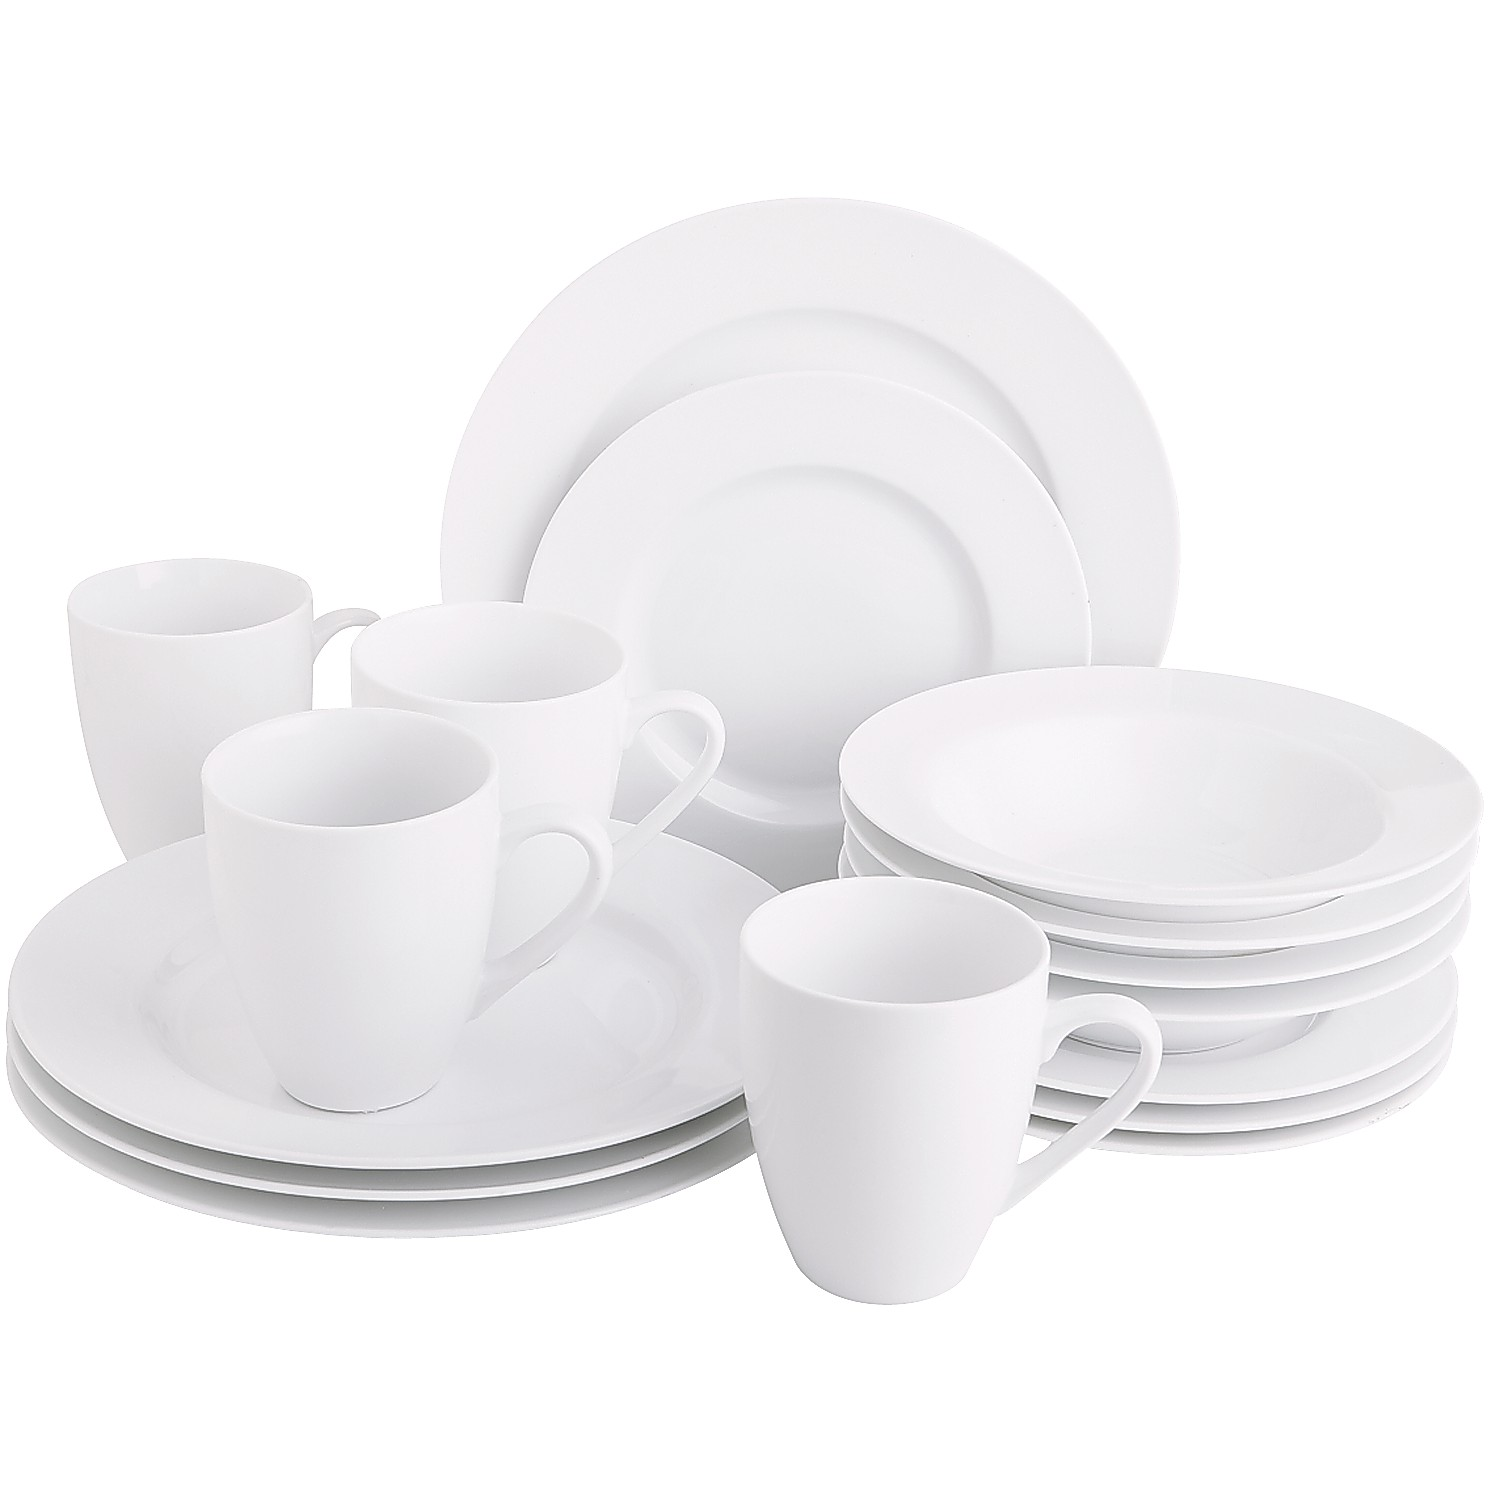 Luminous 16-Piece White Dinnerware Set